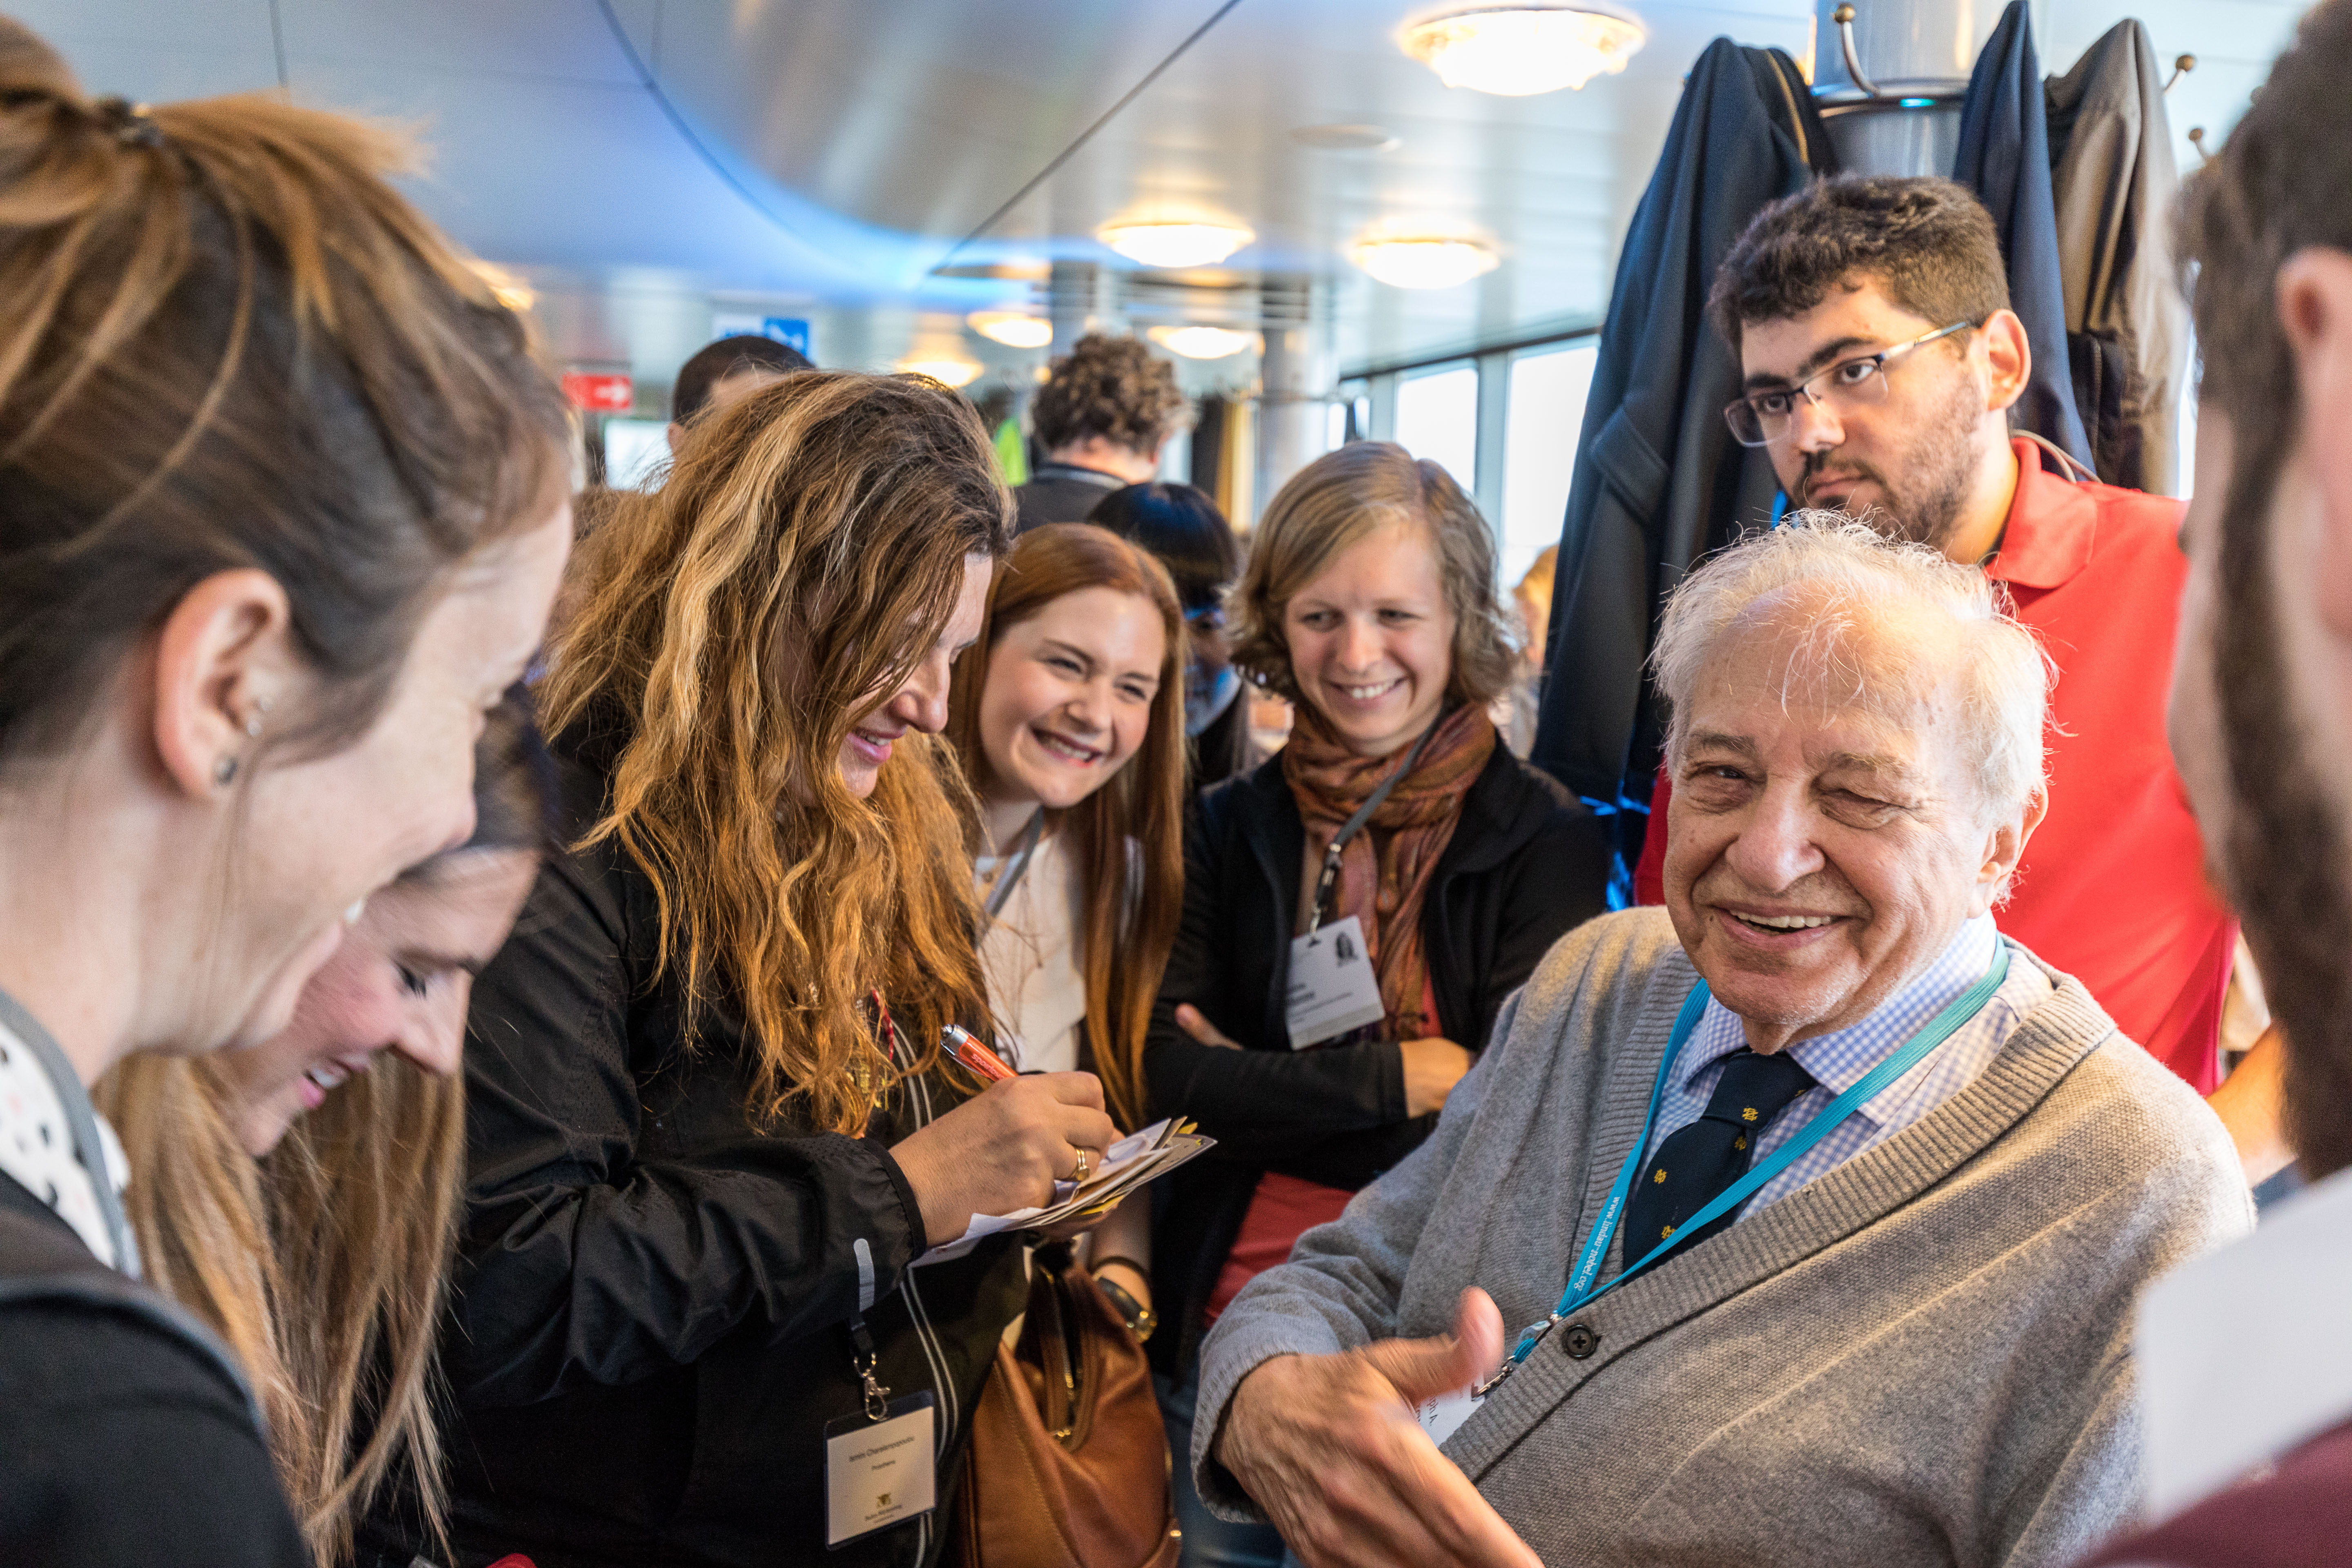 67th Lindau Nobel Laureate Meeting Chemistry, 25.06.2017 - 30.06.2017, Lindau, Germany, Picture/Credit: Christian Flemming/Lindau Nobel Laureate Meetings Boattrip to Mainau Island